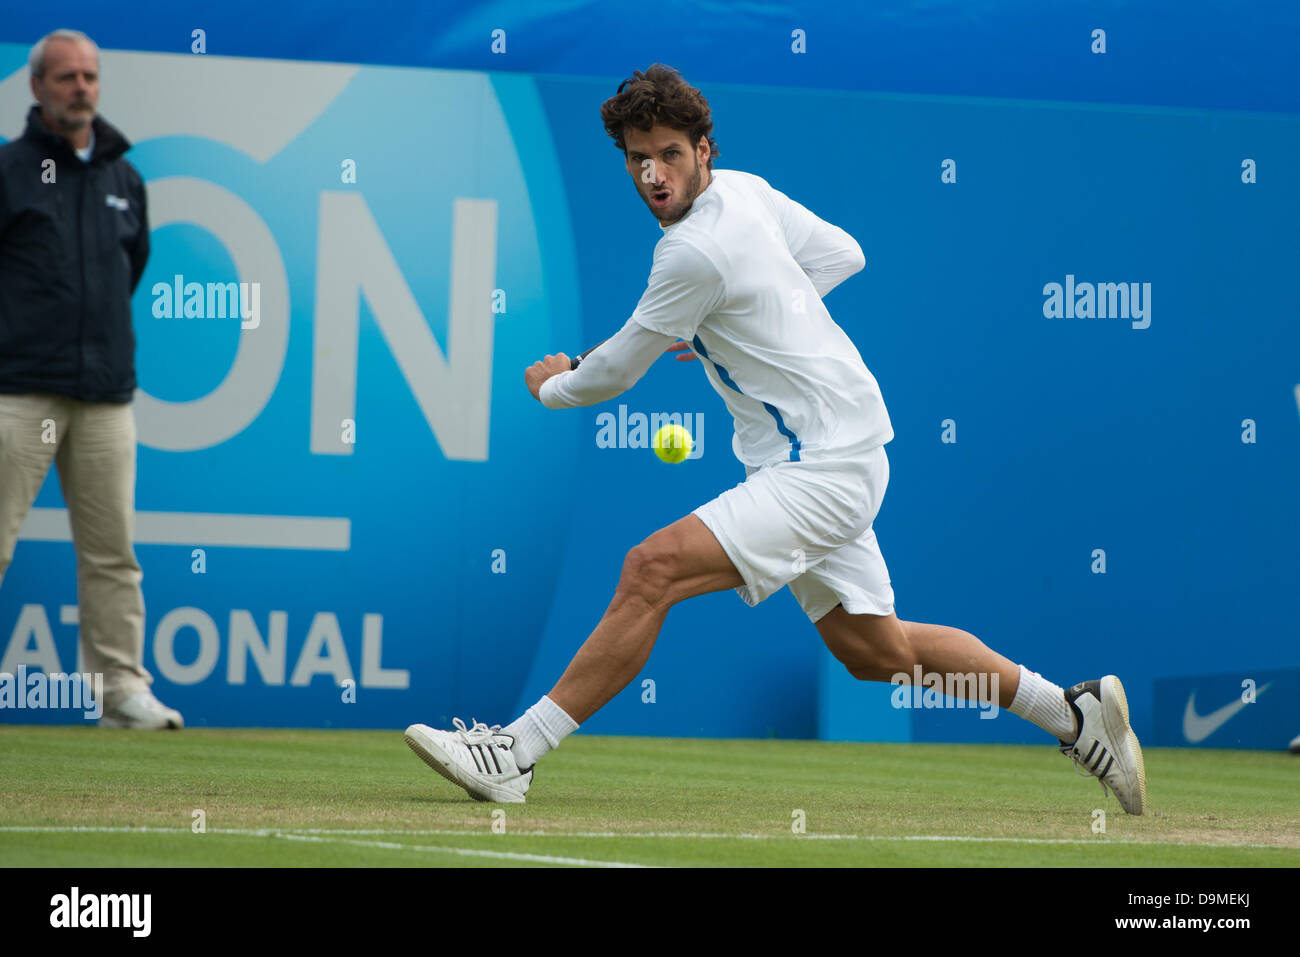 Eastbourne, UK - 22nd June 2013. Feliciano Lopez of Spain in action hitting a running single handed backhand in - Stock Image